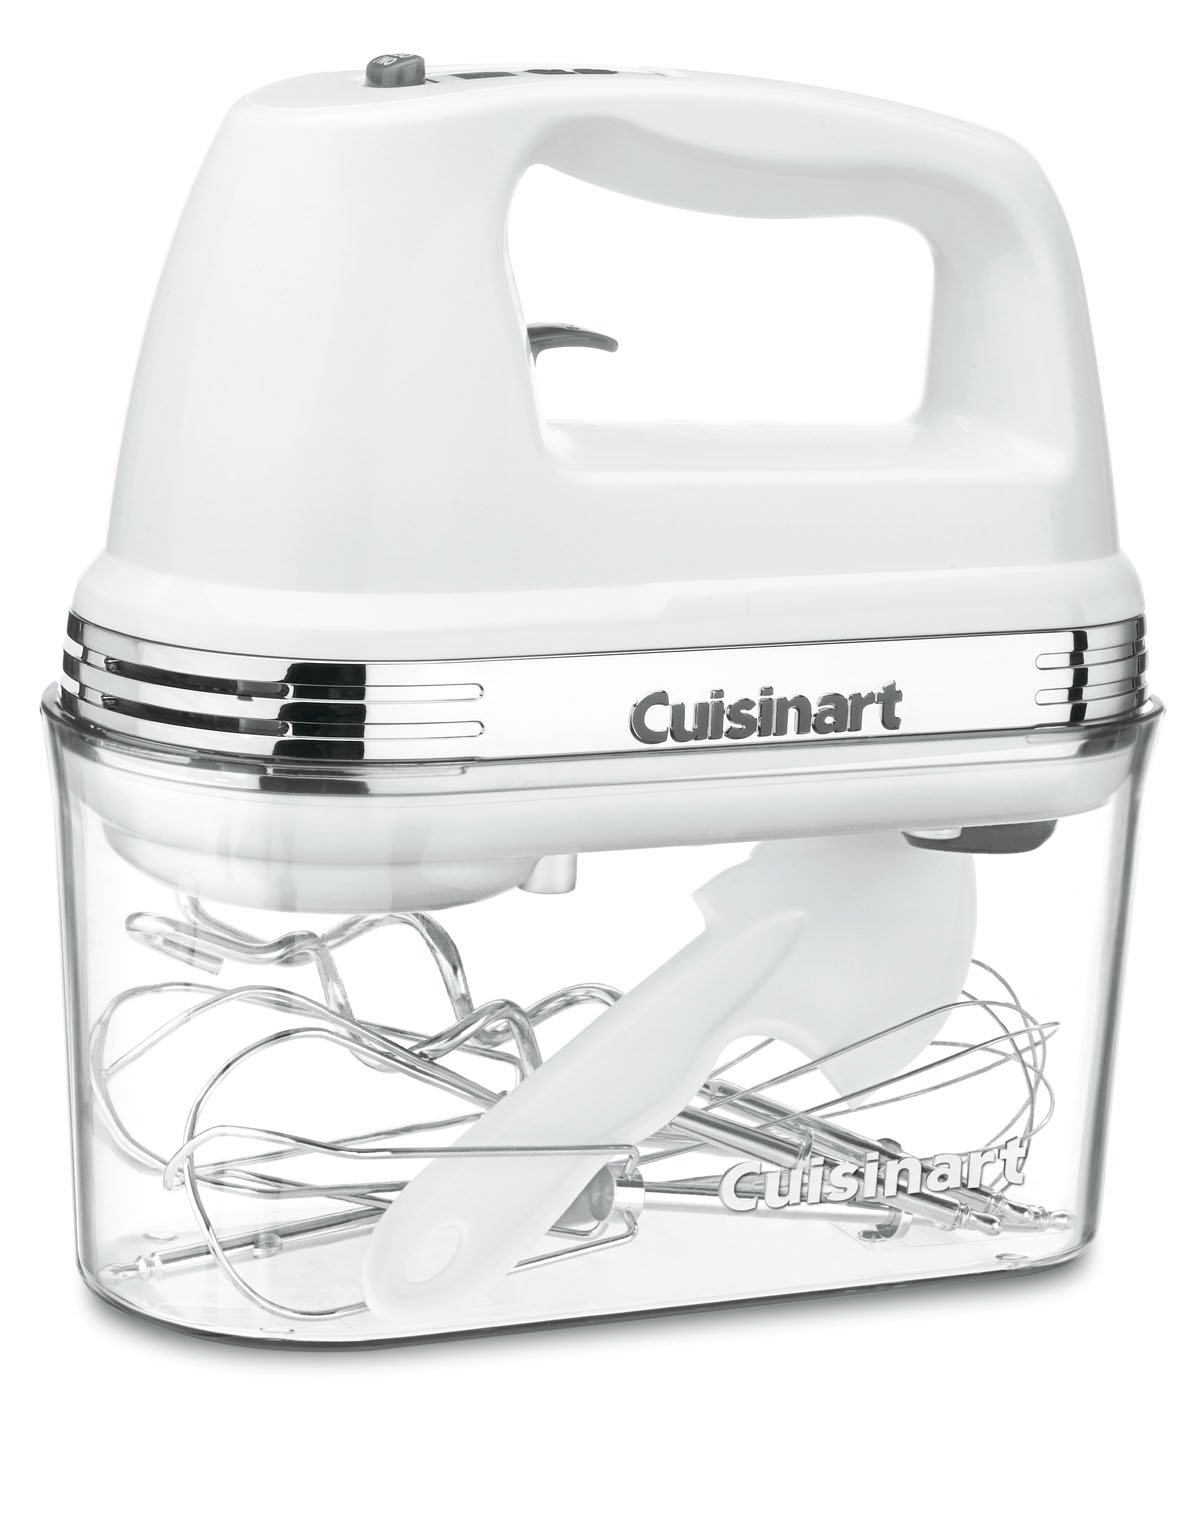 Cuisinart HM-90S Power Advantage Plus 9-Speed Handheld Mixer with Storage Case, White by Cuisinart (Image #1)